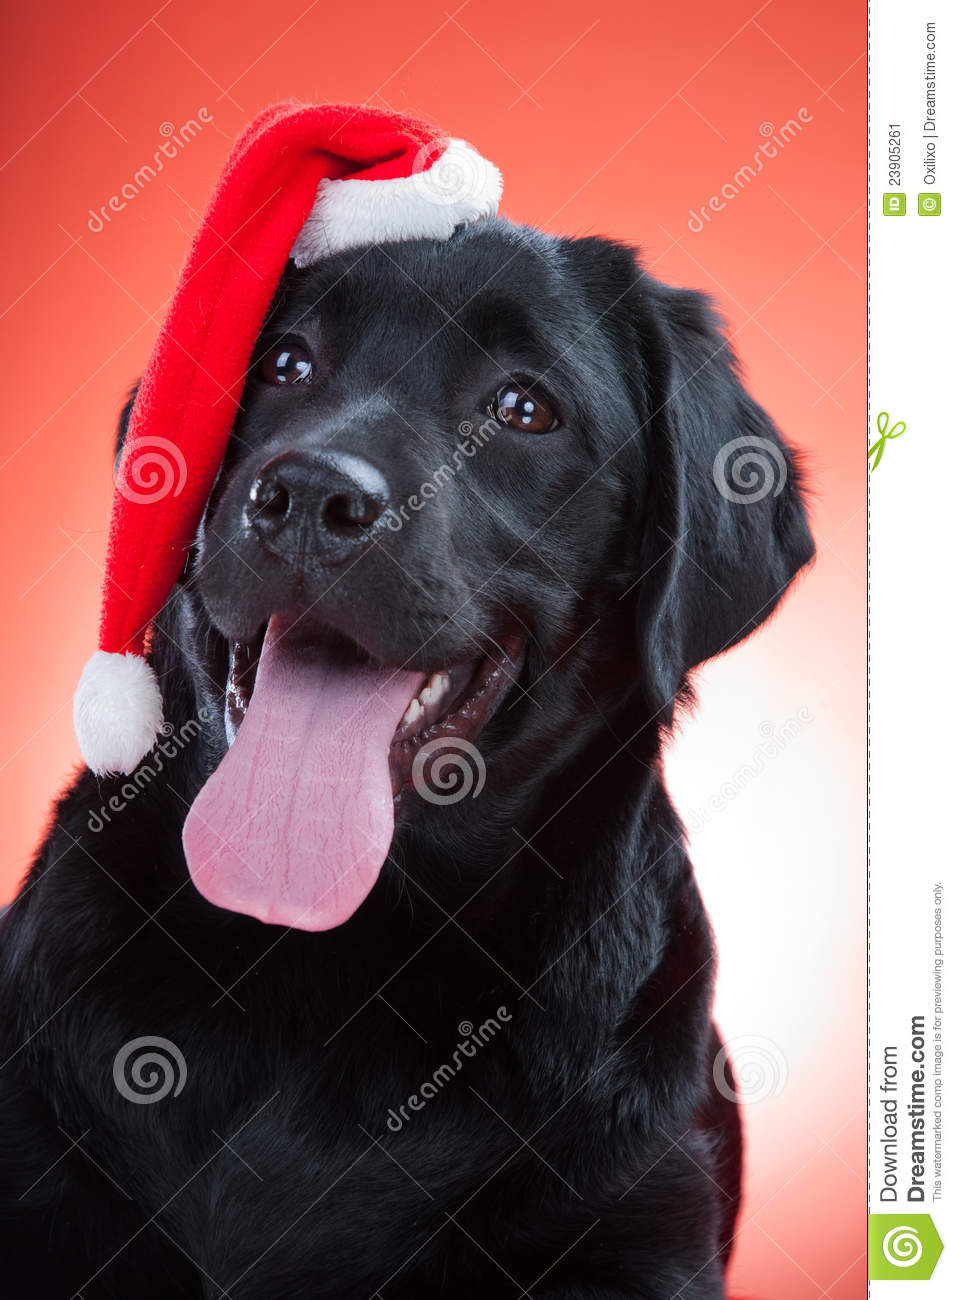 Cute Wallpaper Patterns Black Labrador Retriever Wearing Red Cap Of Santa Stock